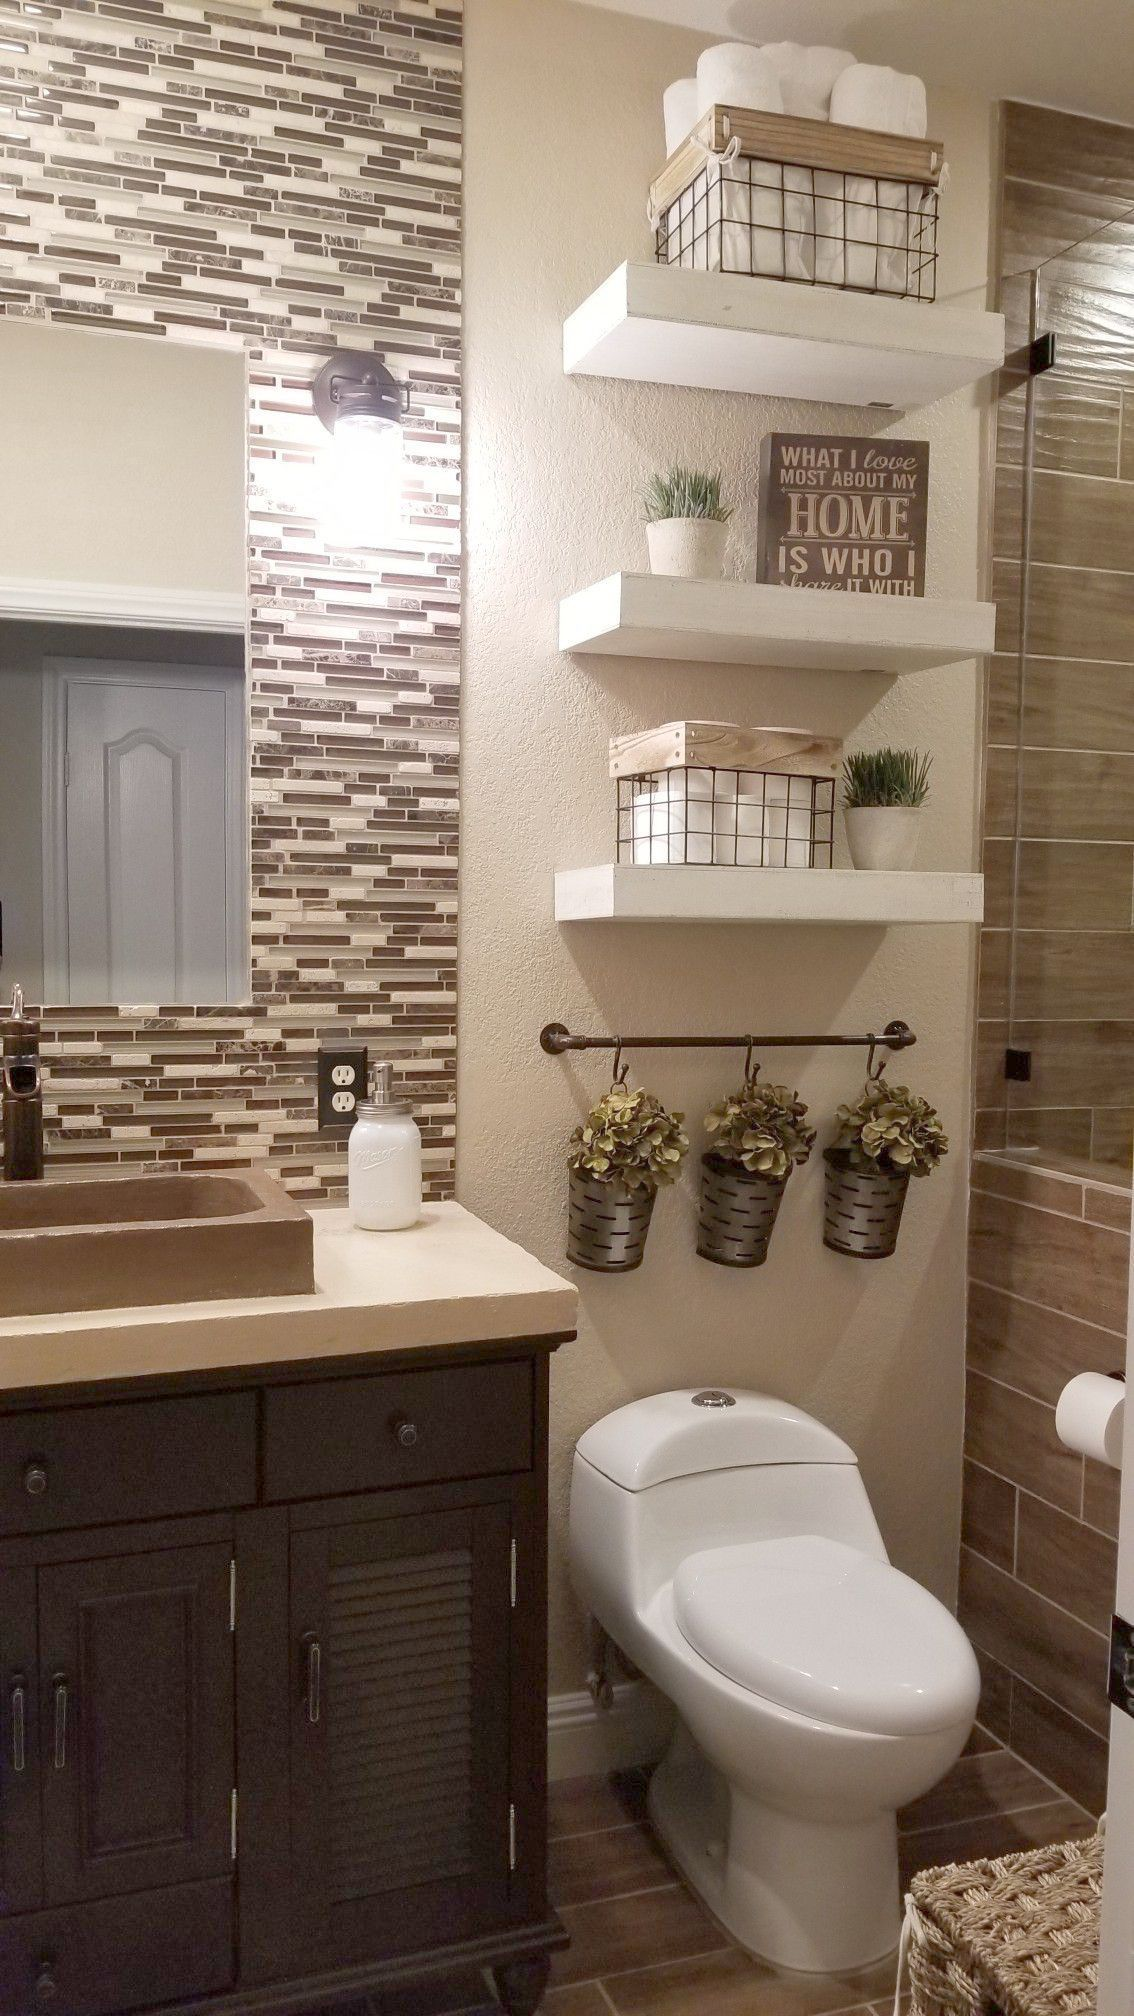 Bathroom Light Fixtures At Lowes An Bathroom Decor Flowers While Bathroom Remodel Pinterest Small Bathroom Remodel Bathroom Decor Elegant Bathroom